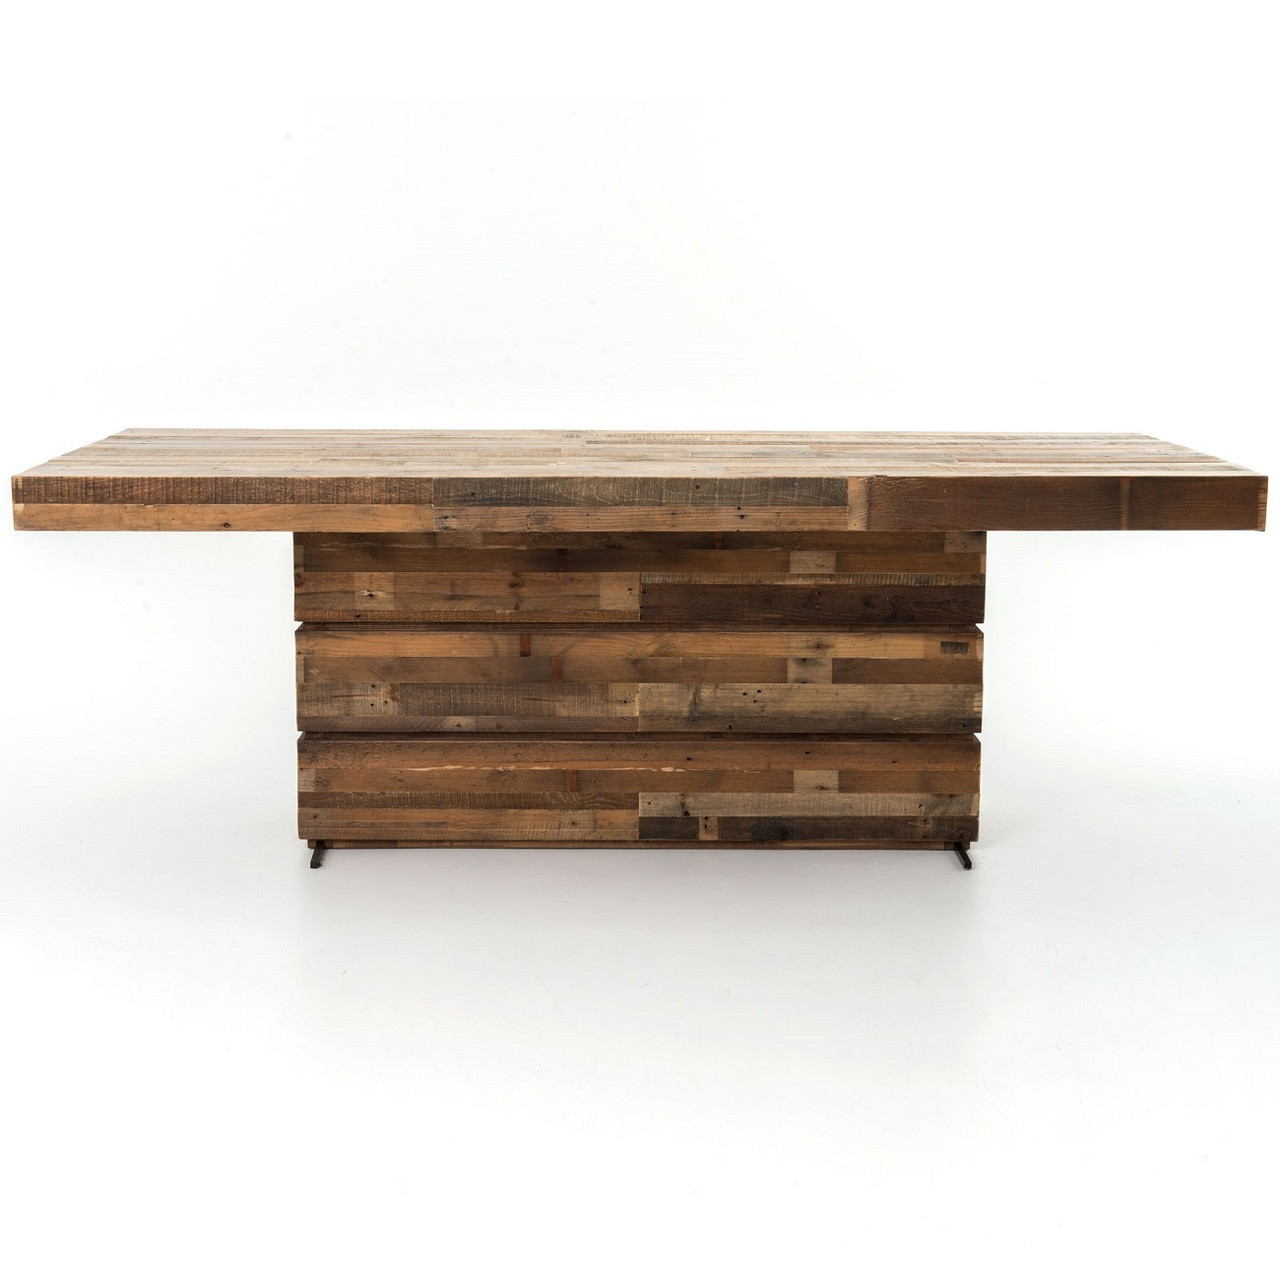 Angora Tahoe Dining Room Table 89. Rectangular Dining Room Tables   Reclaimed and Salvaged Wood